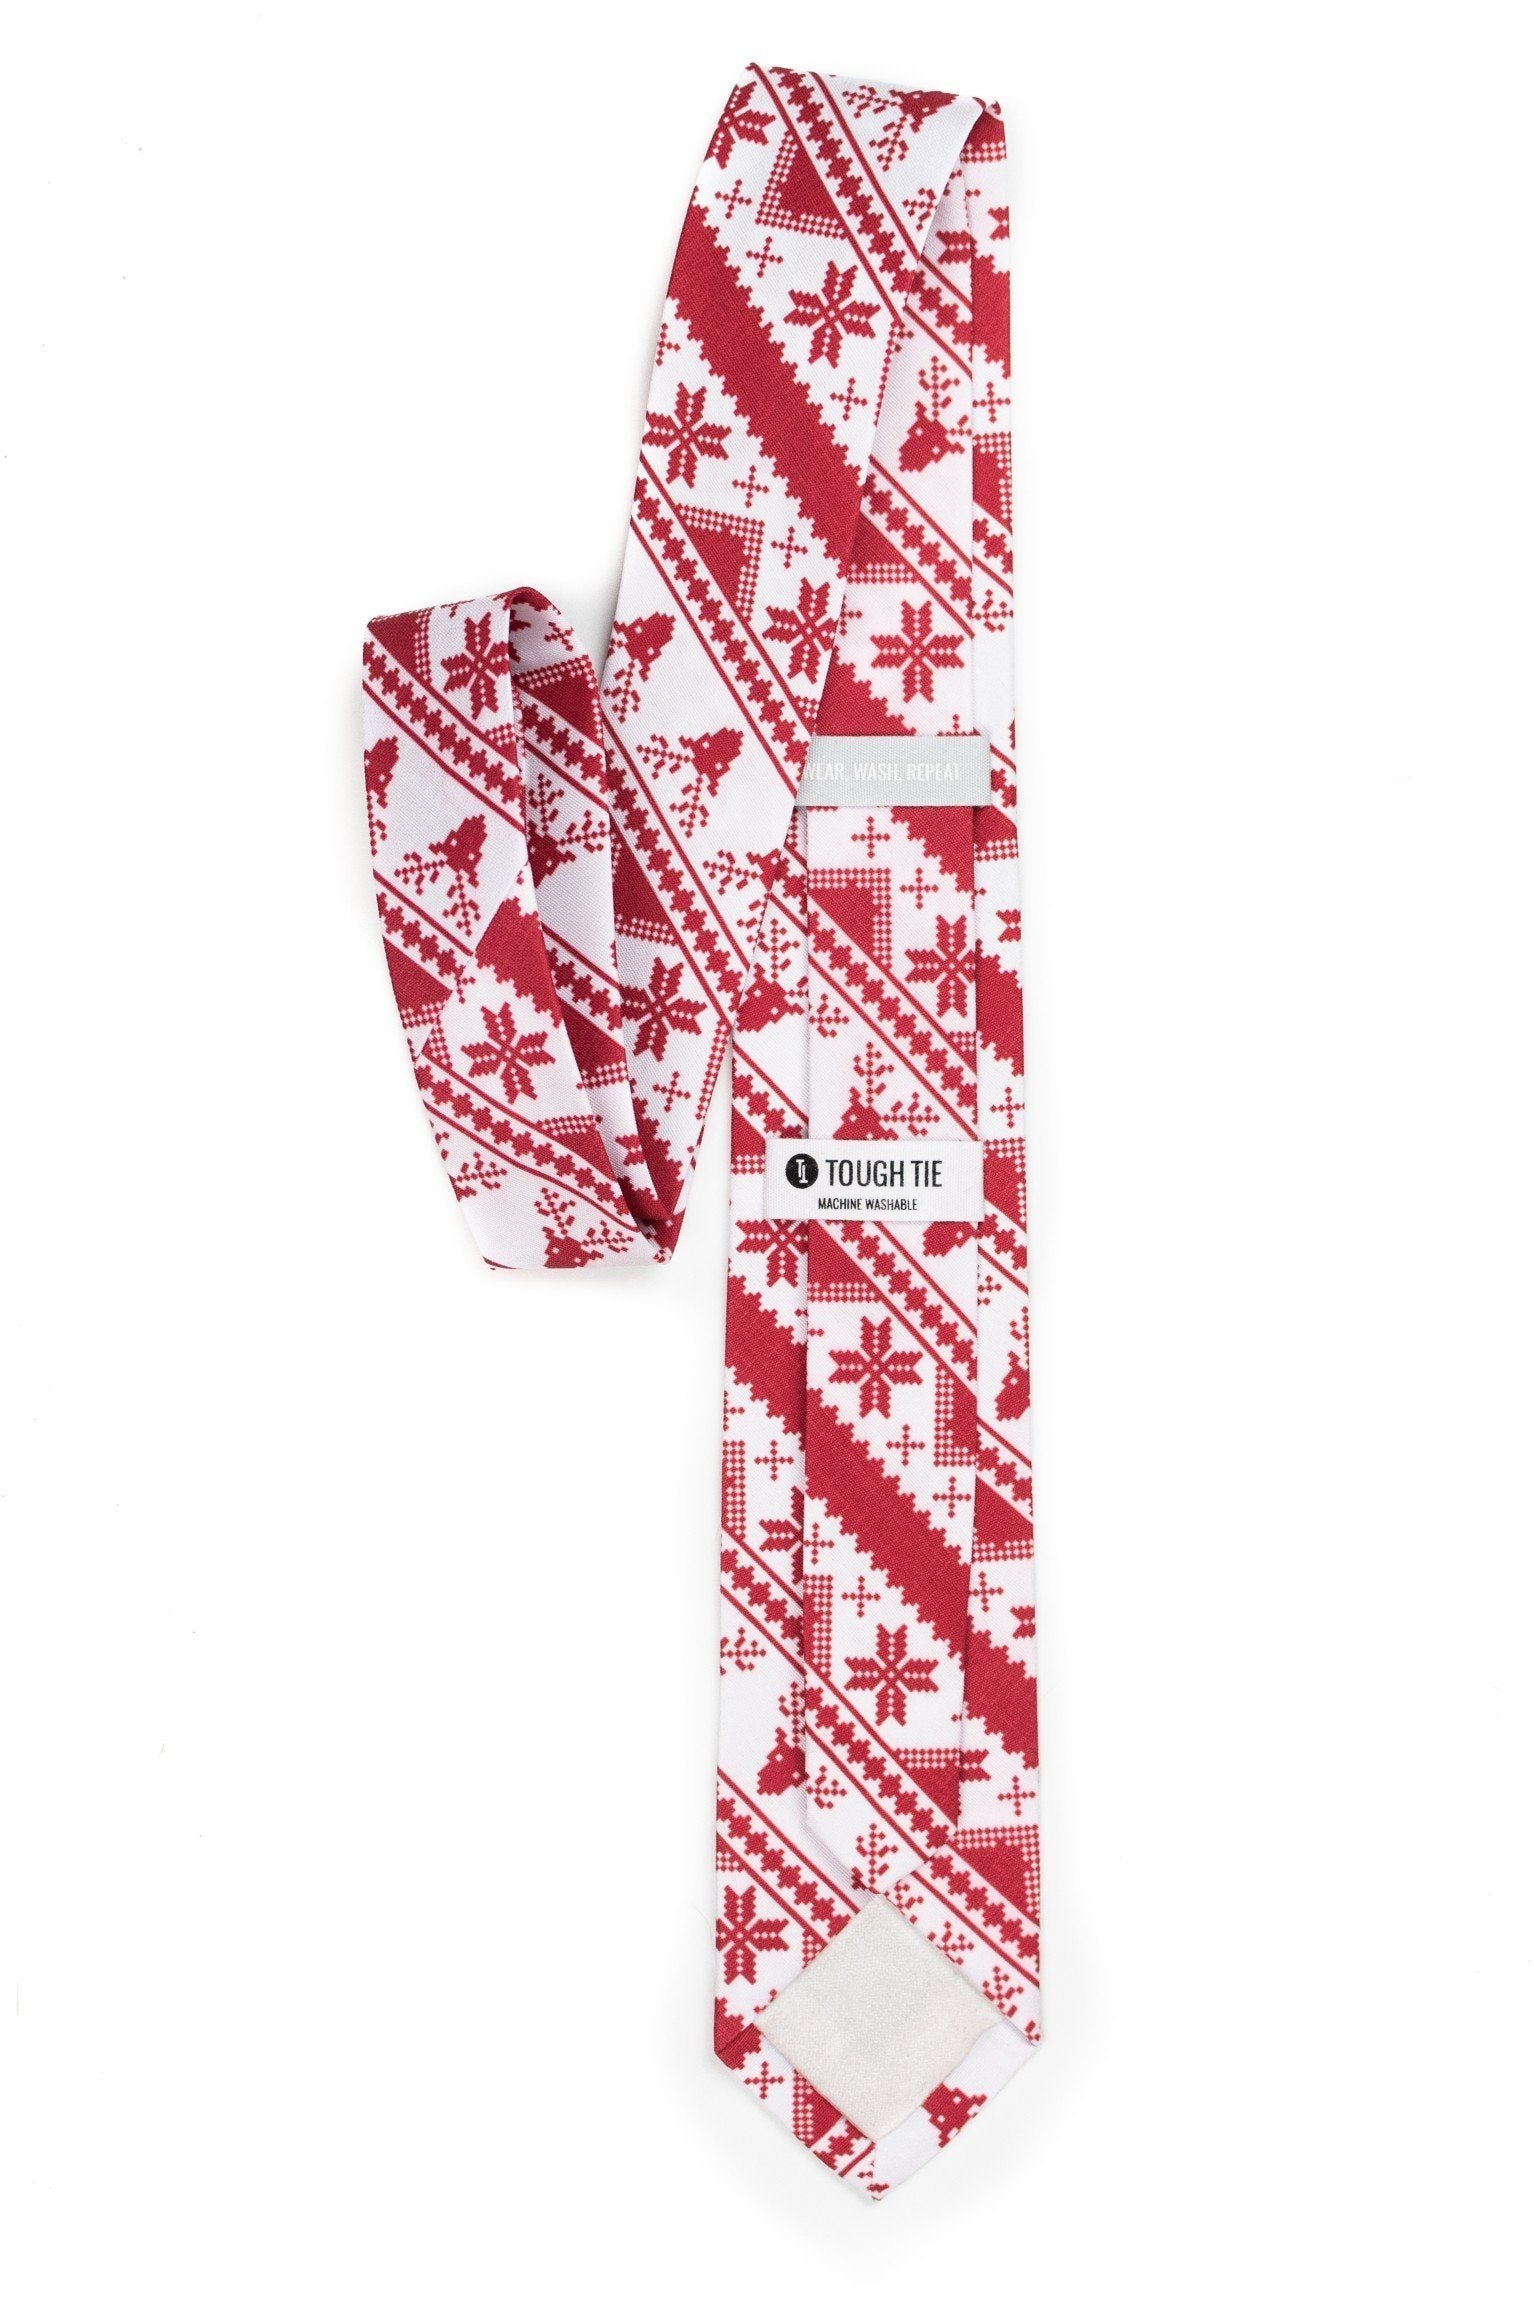 Rudolph's Journey red ugly Christmas sweater tie | Boy's - Tough Tie